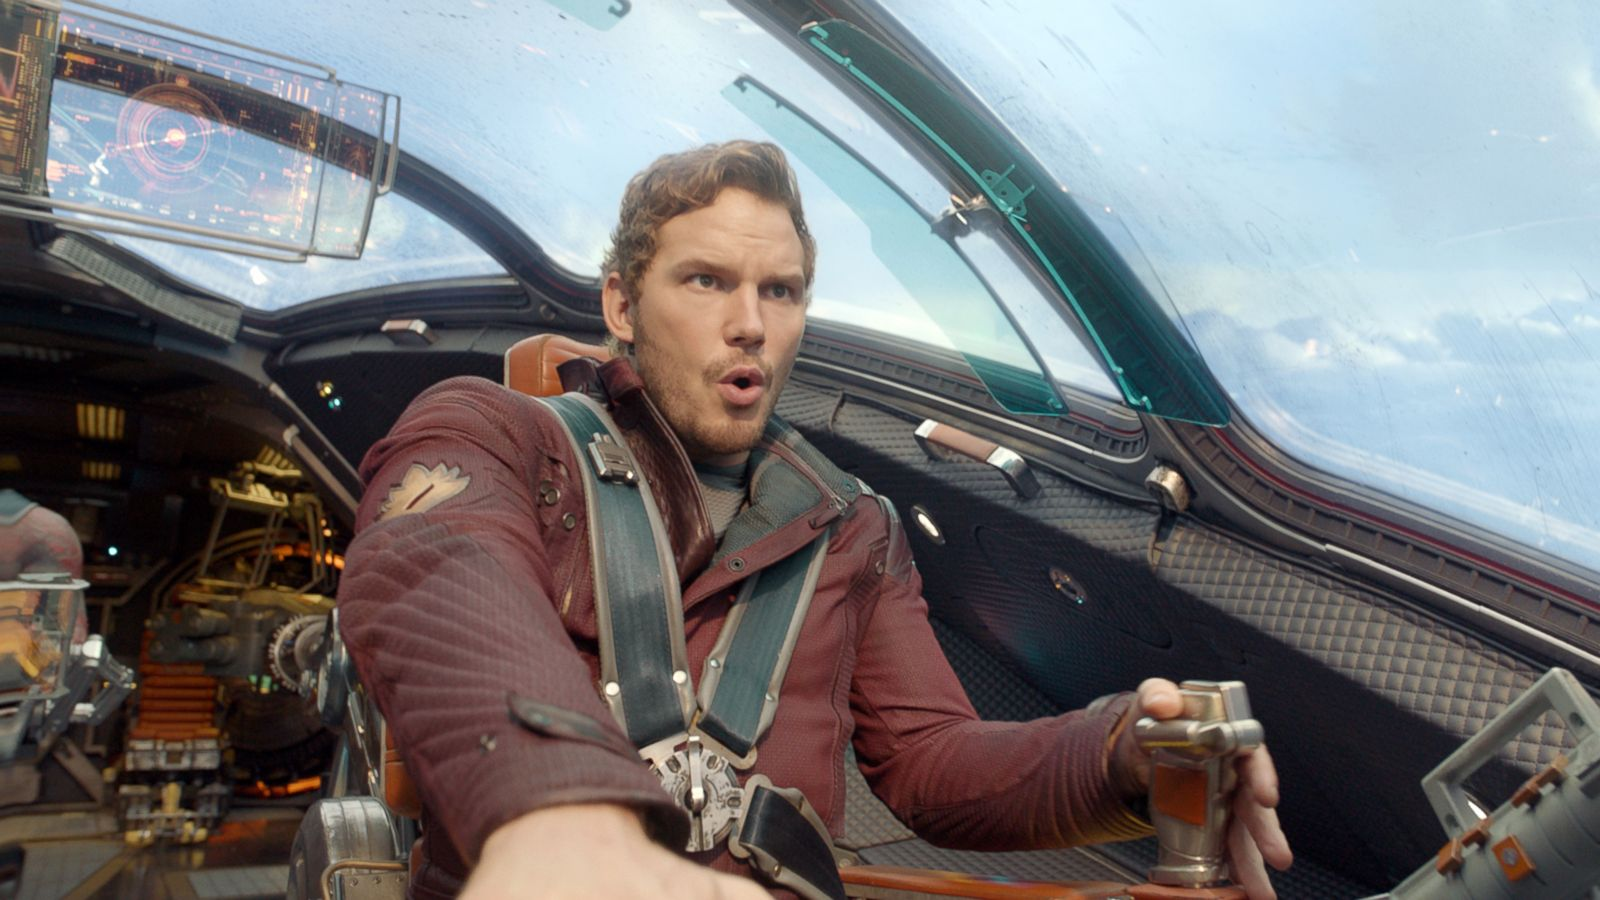 Chris Pratt on gaining weight for future roles and being insecure as an actor